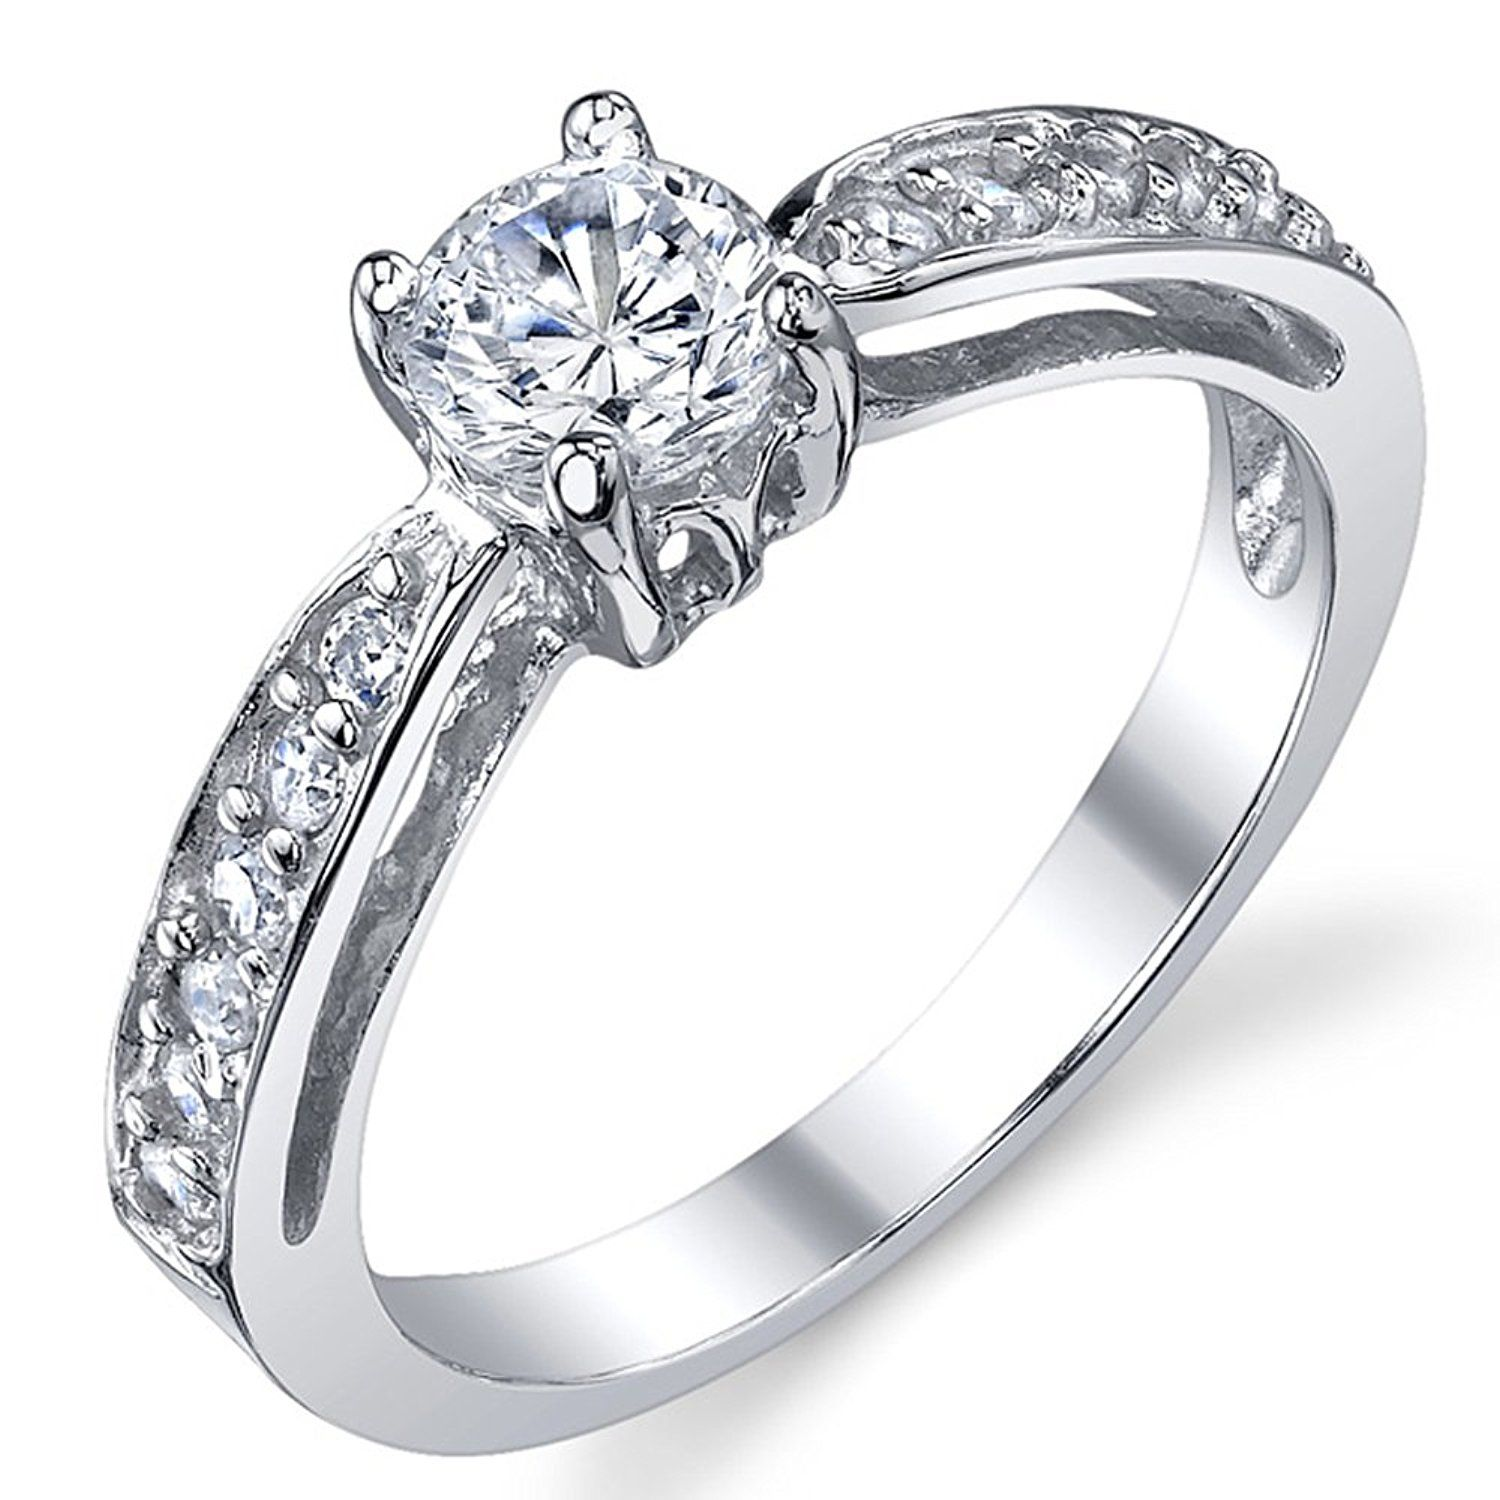 Sterling Silver 925 Wedding Engagement Ring with .50 Carat